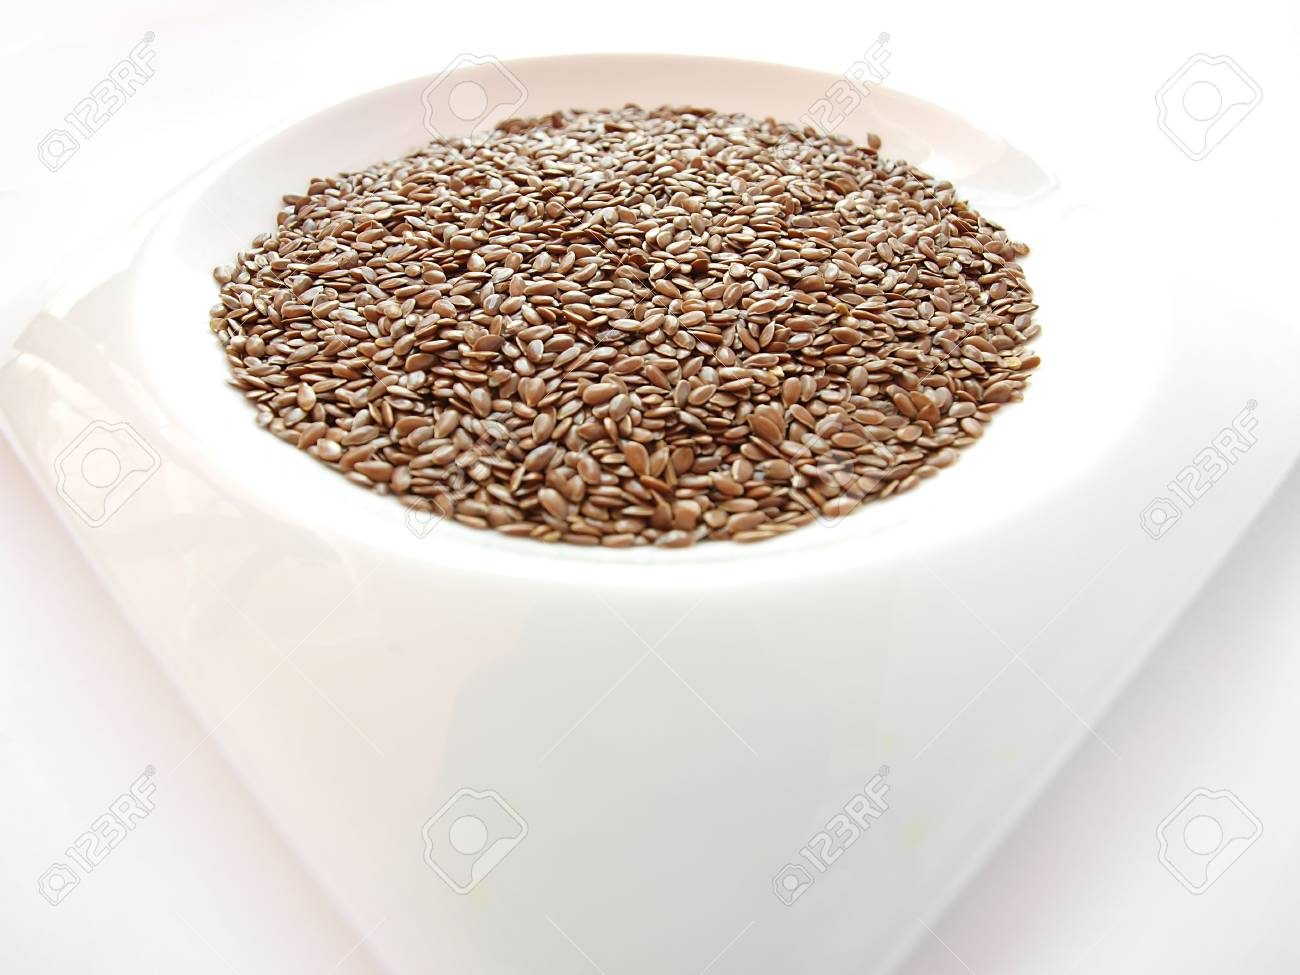 Bowl full of brown flax seed or linseed Stock Photo - 7774783